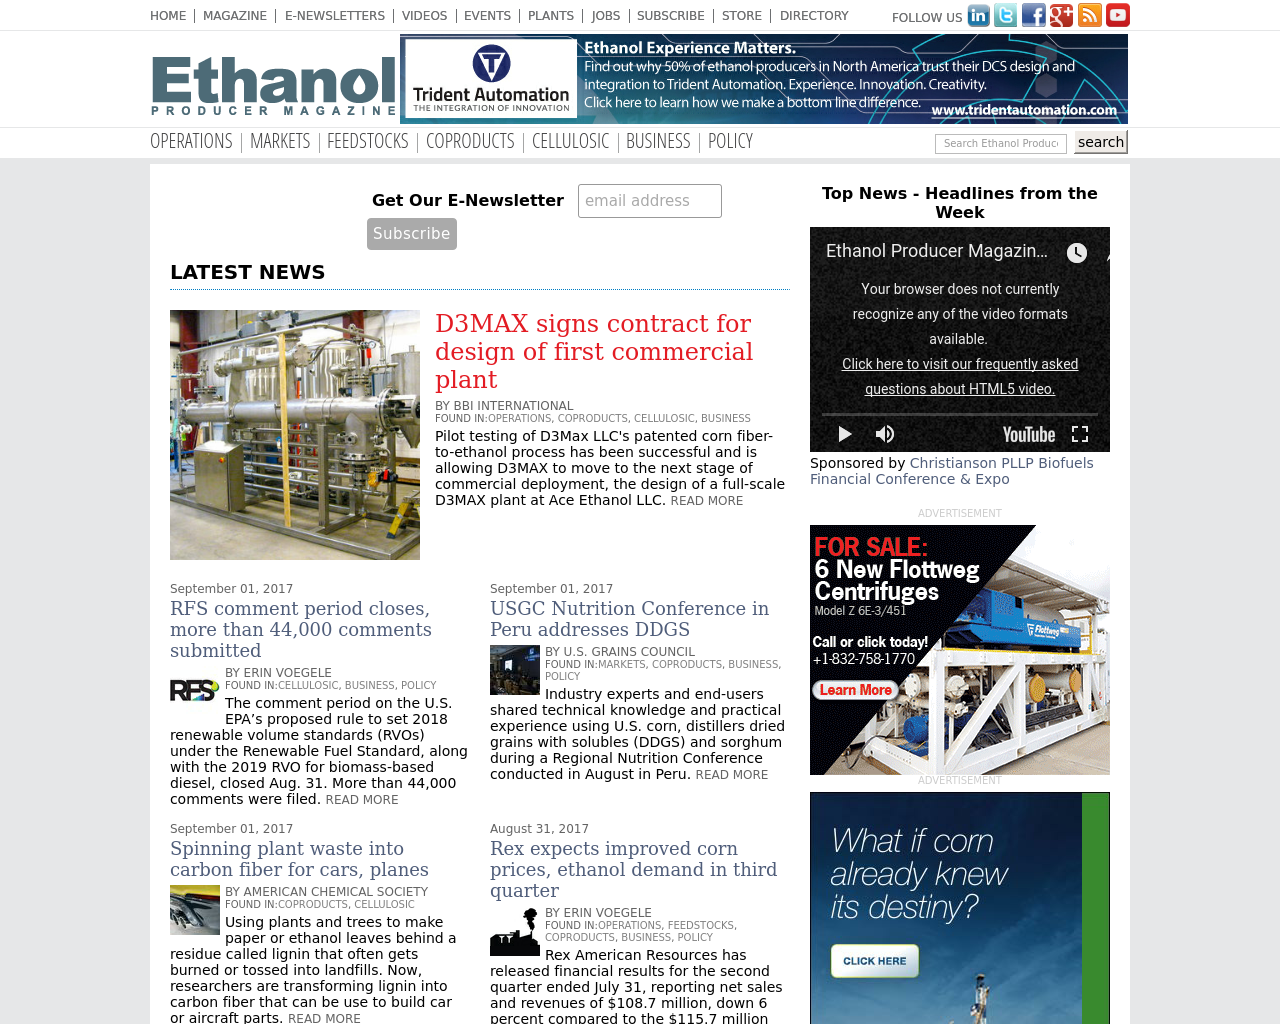 Ethanol-Producer-Magazine-Advertising-Reviews-Pricing